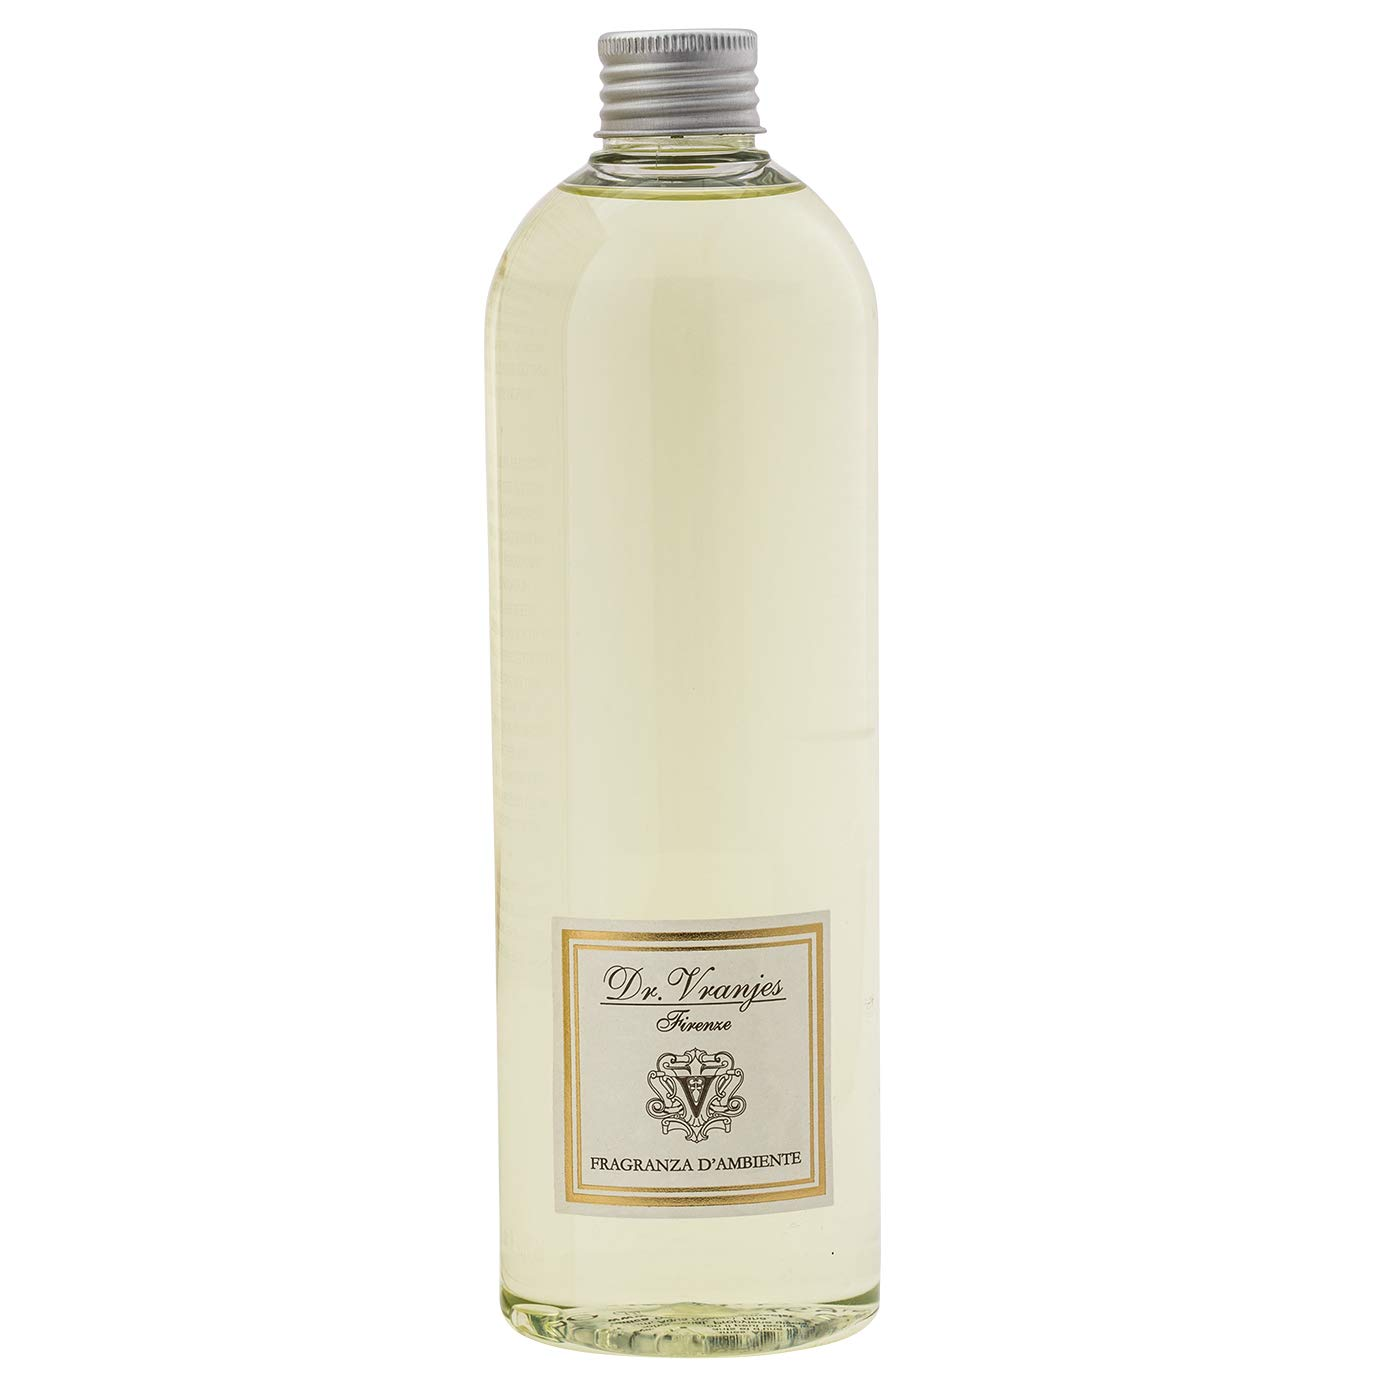 Dr. Vranjes Crystal Room Diffuser Refill 500 ml - Ginger and Lime